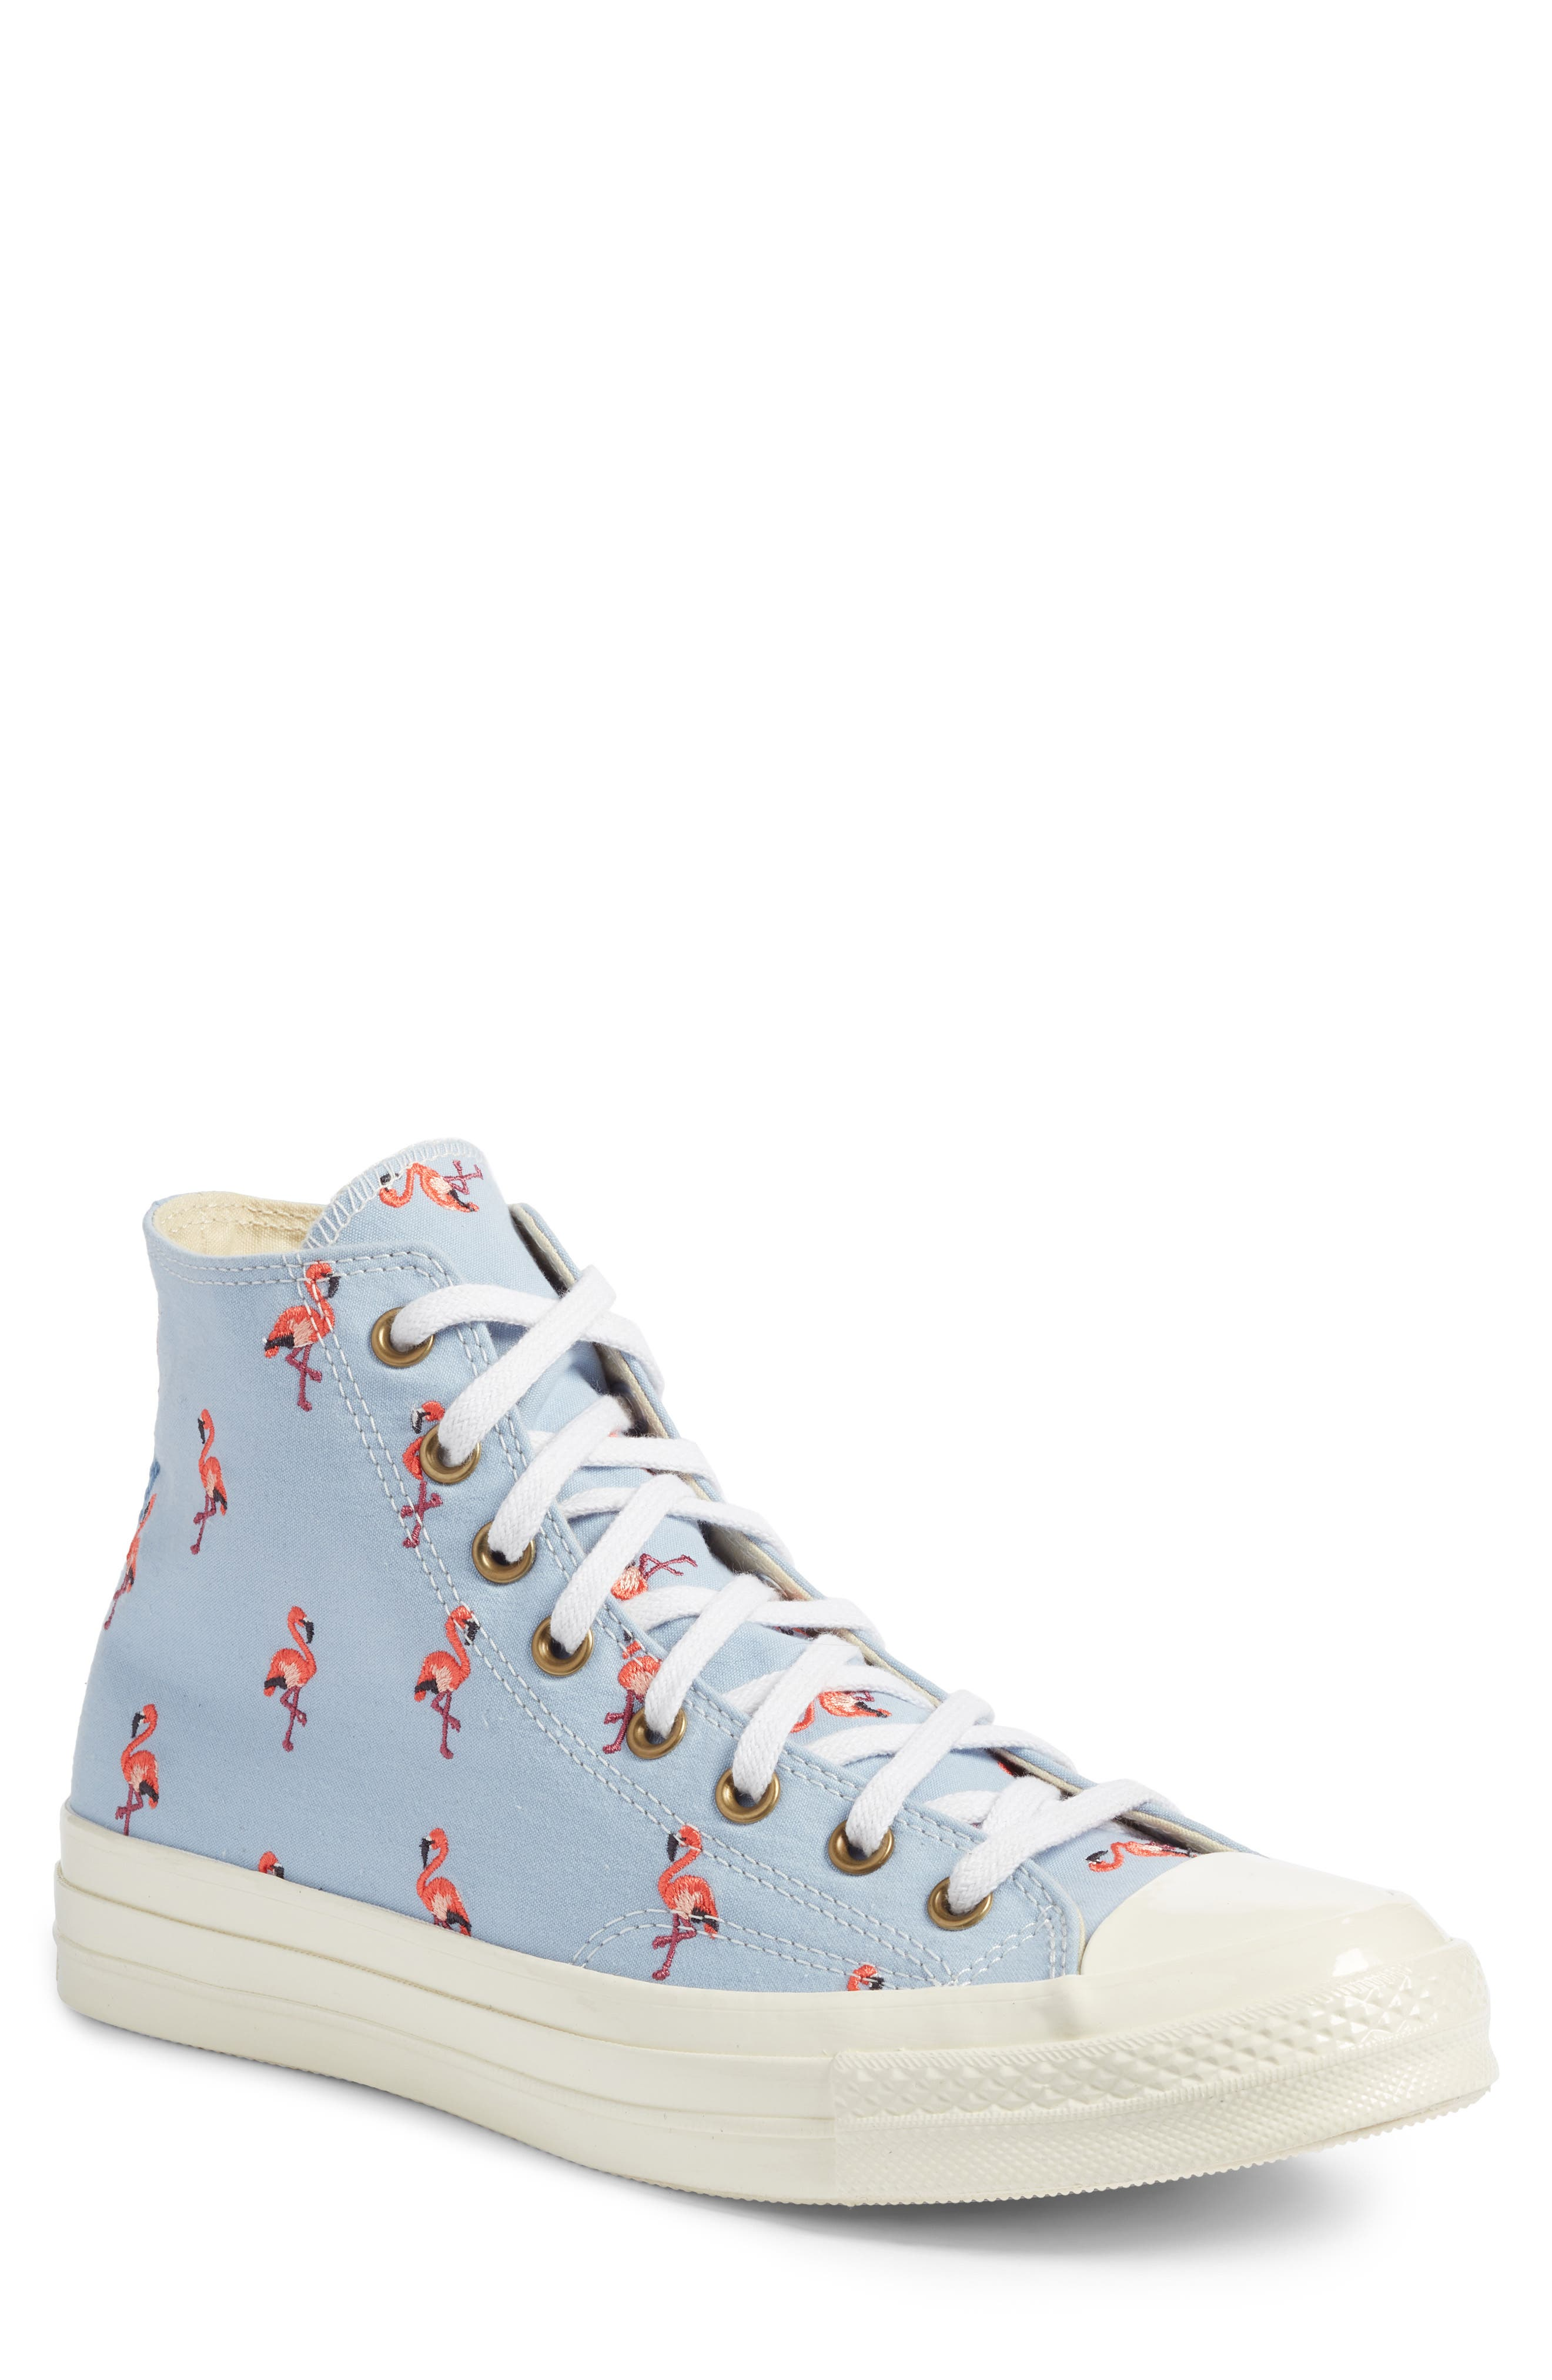 Chuck Taylor<sup>®</sup> All Star<sup>®</sup> Chuck 70 Flamingo Sneaker,                             Main thumbnail 1, color,                             457